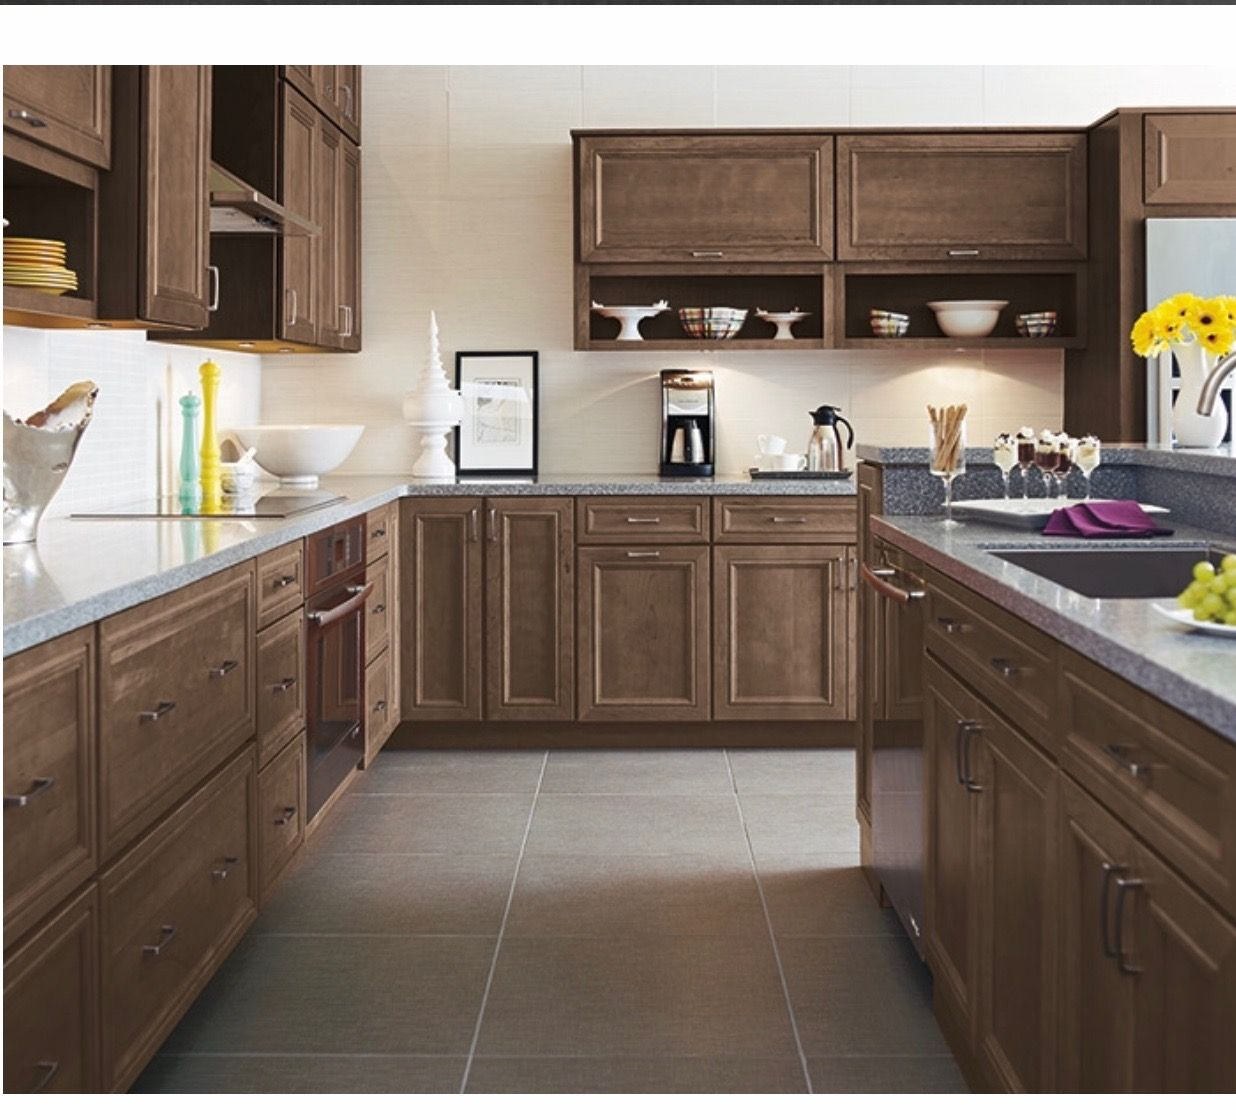 Morel Stained Cherry Cabinets in 2019 | Kitchen cabinets ...